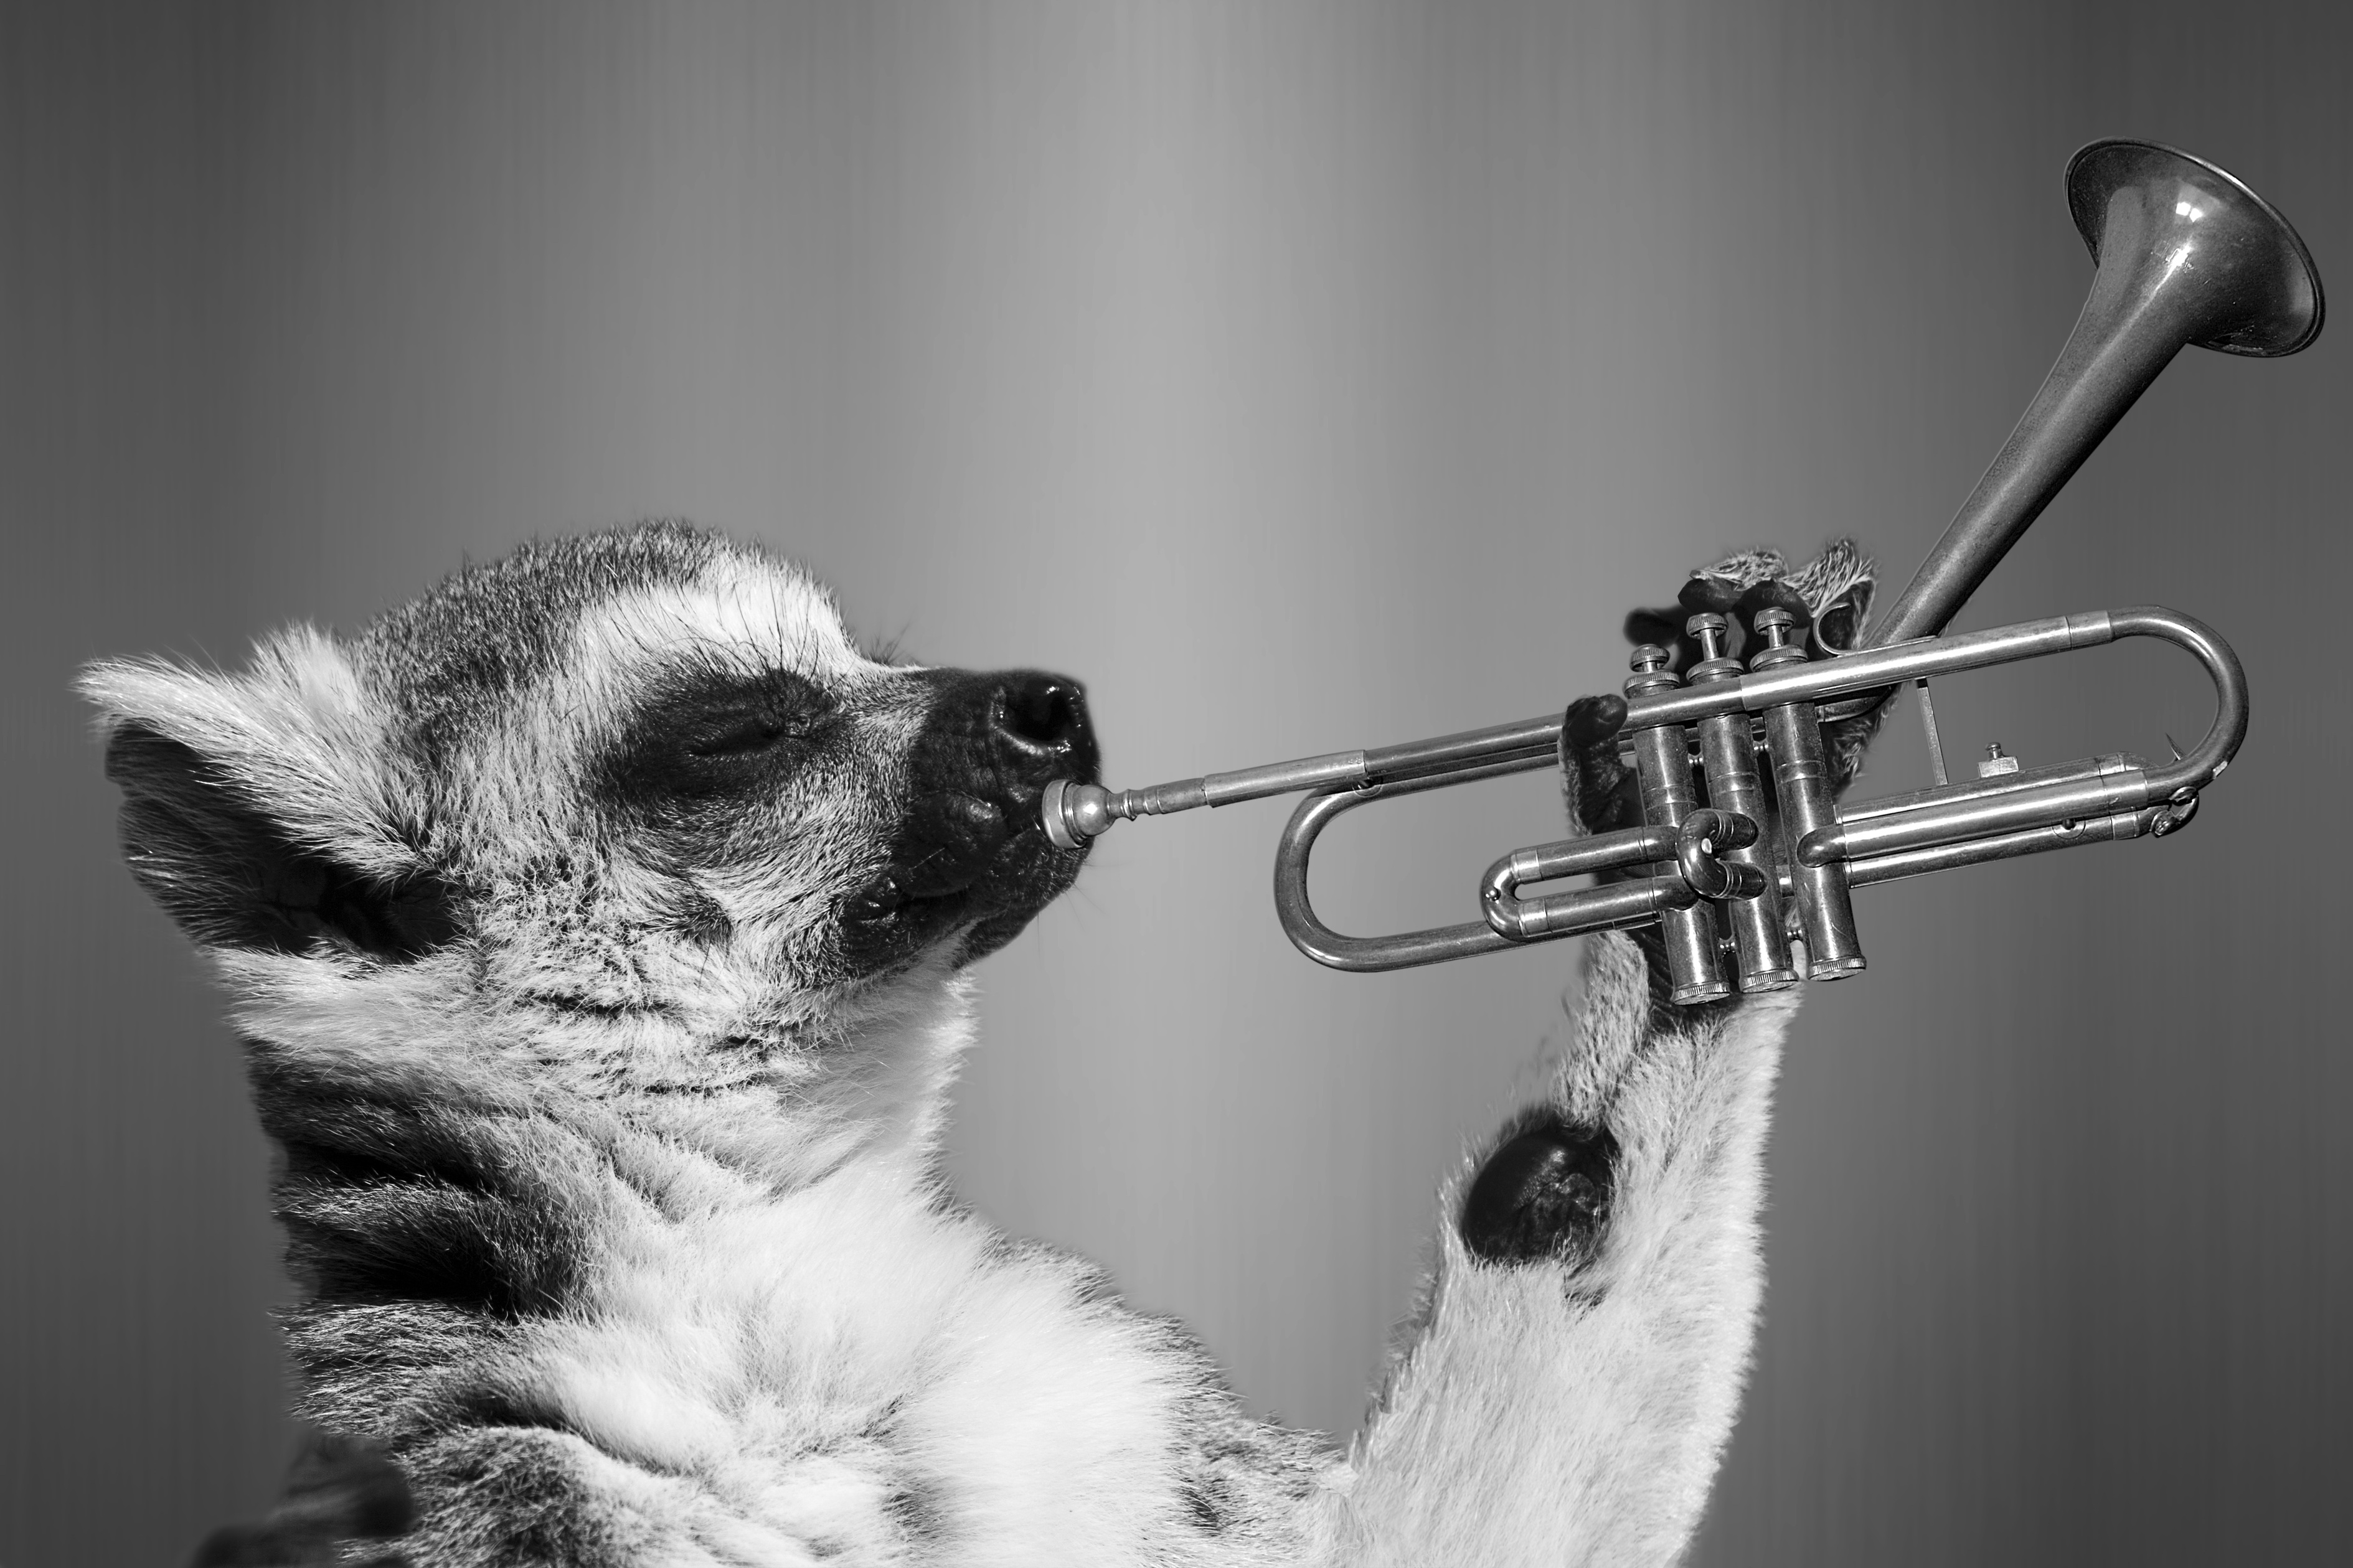 Cute Trumpet Wallpapers 250 Amazing Funny Photos 183 Pexels 183 Free Stock Photos